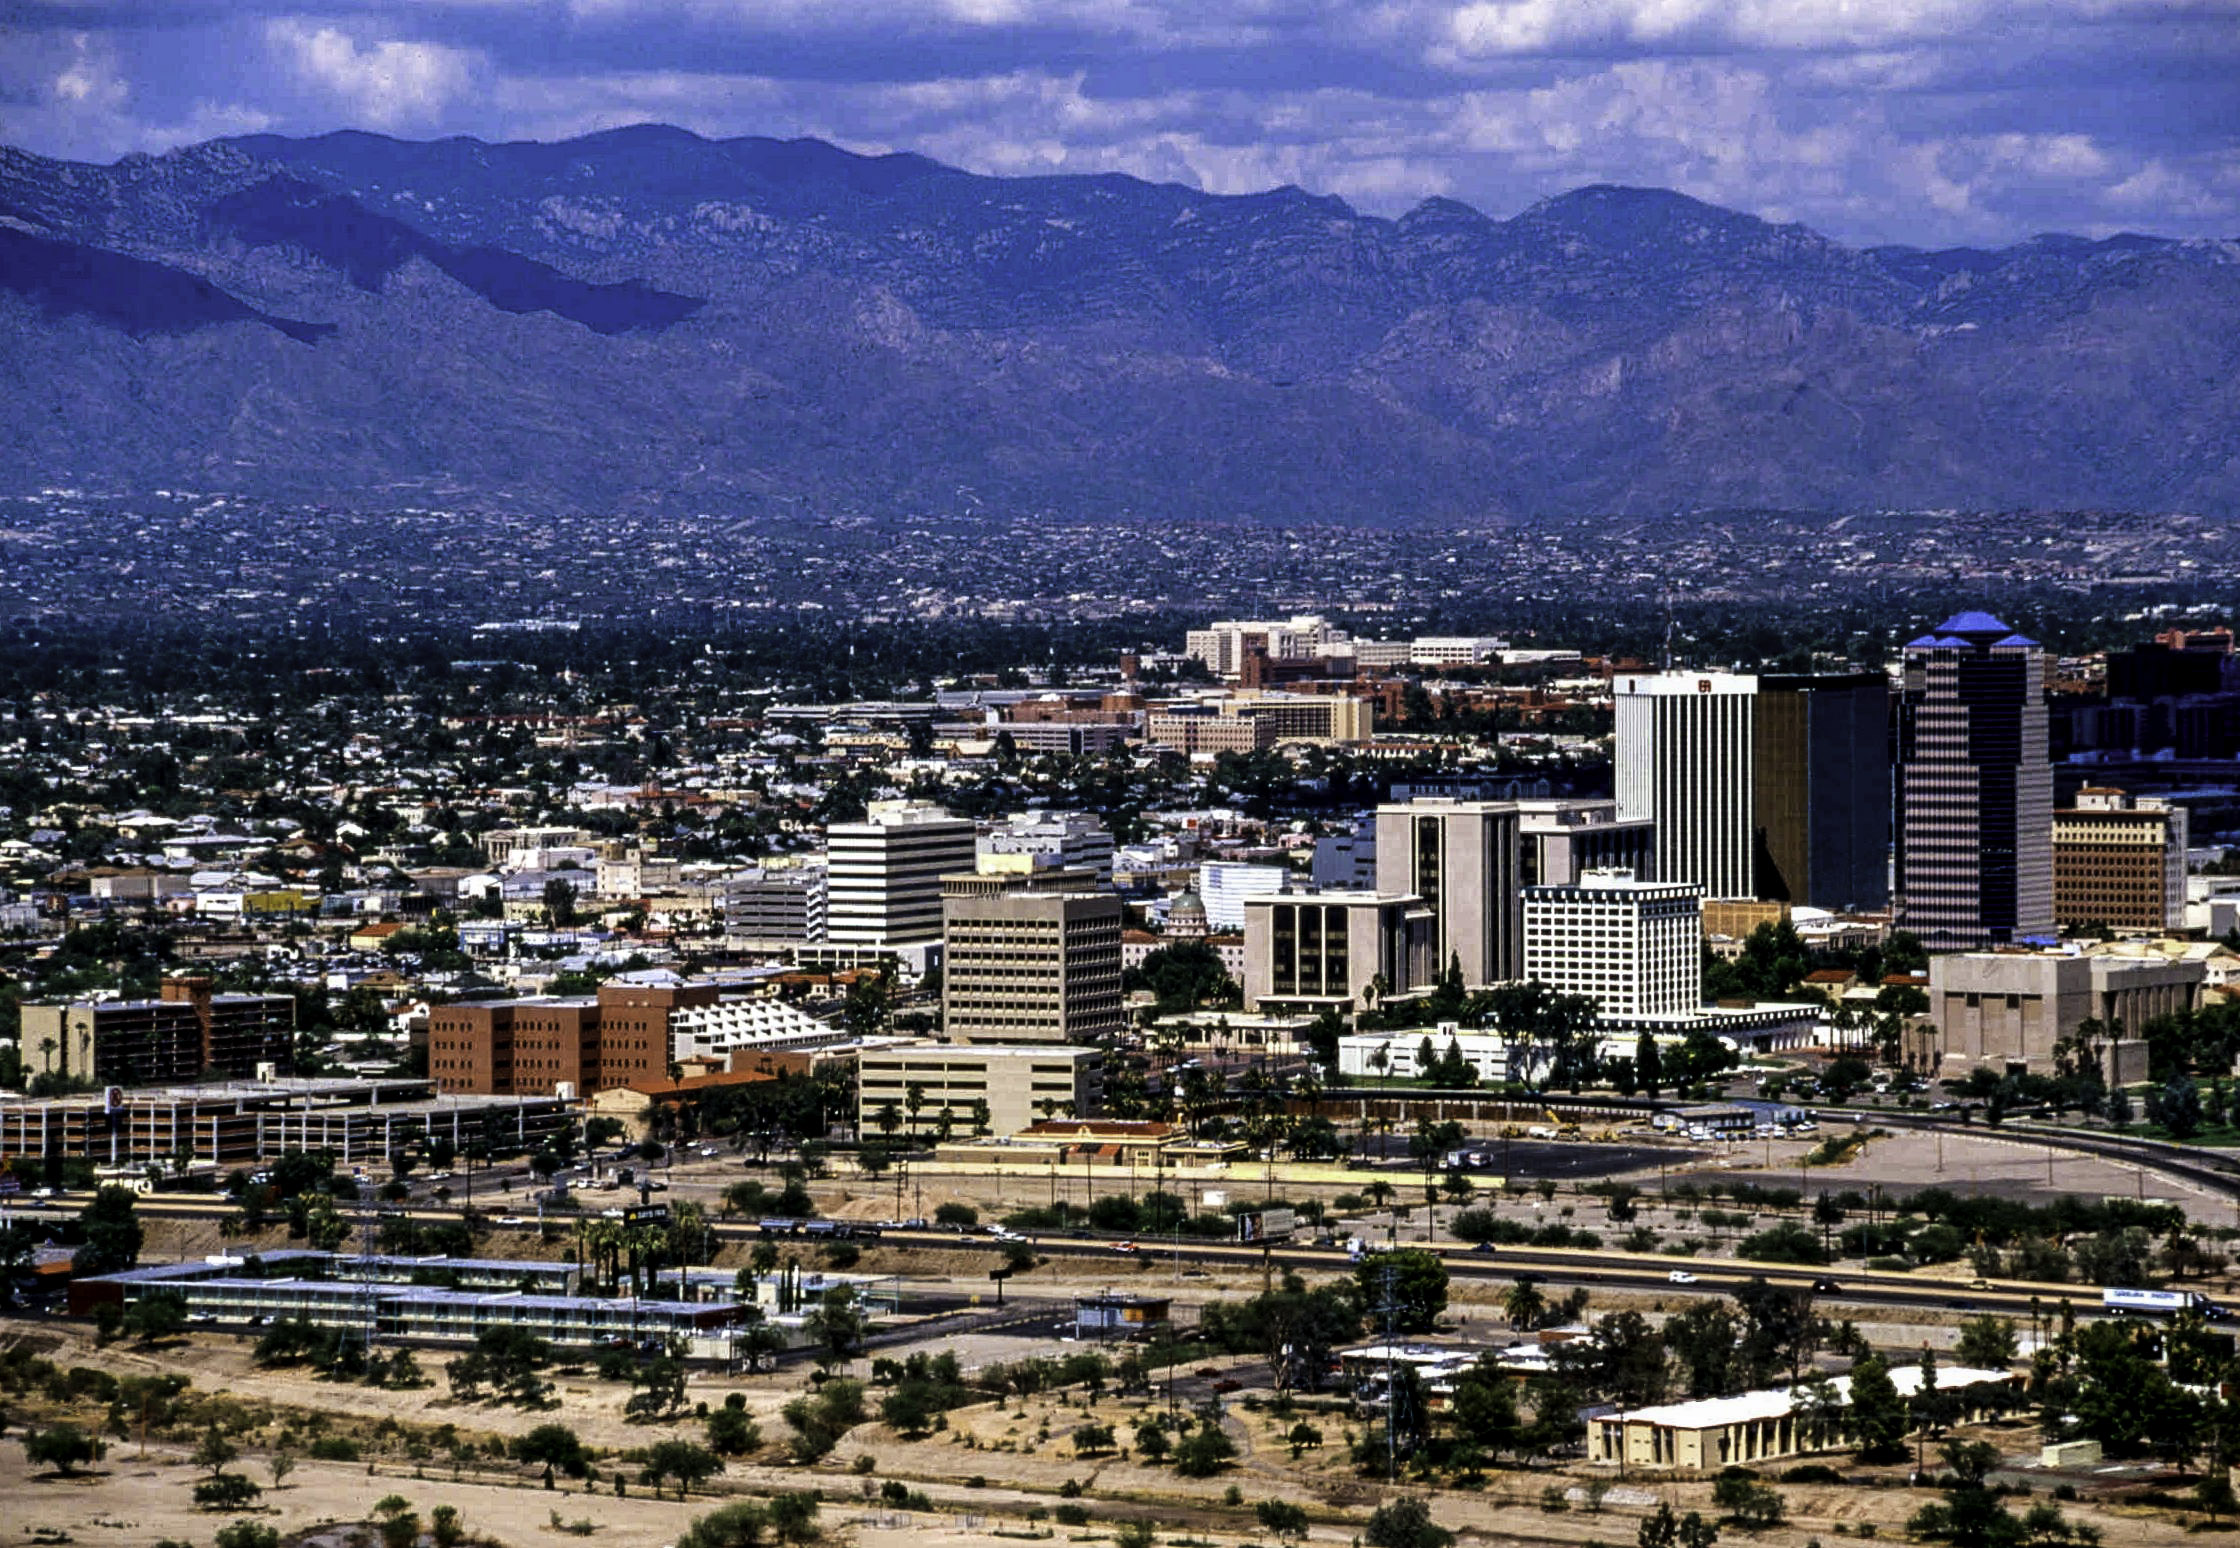 cityscape of tucson arizona - Tucson, AZ Bed Bug Lawyer